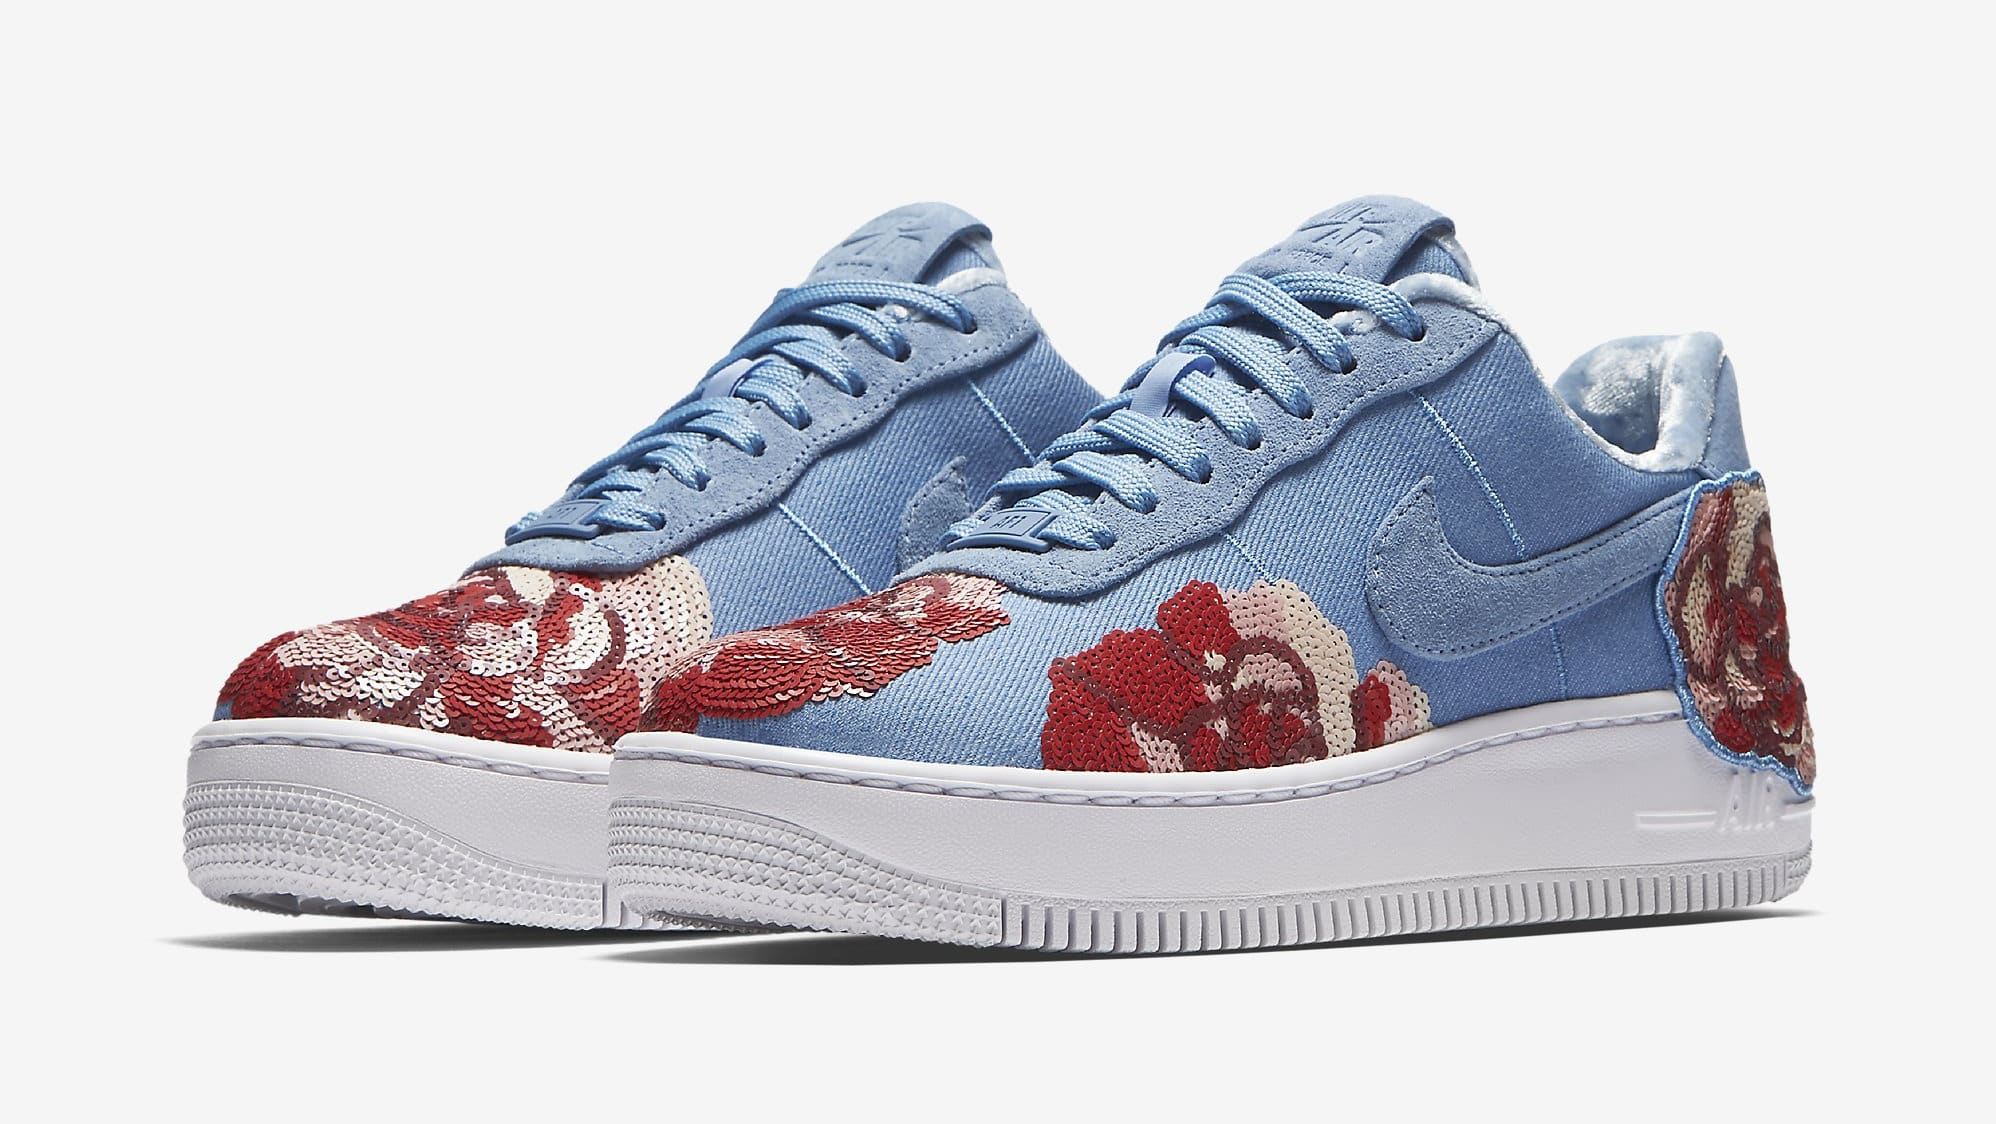 Nike Air Force 1 Low Floral Sequin Pack 898421-402 (Pair)